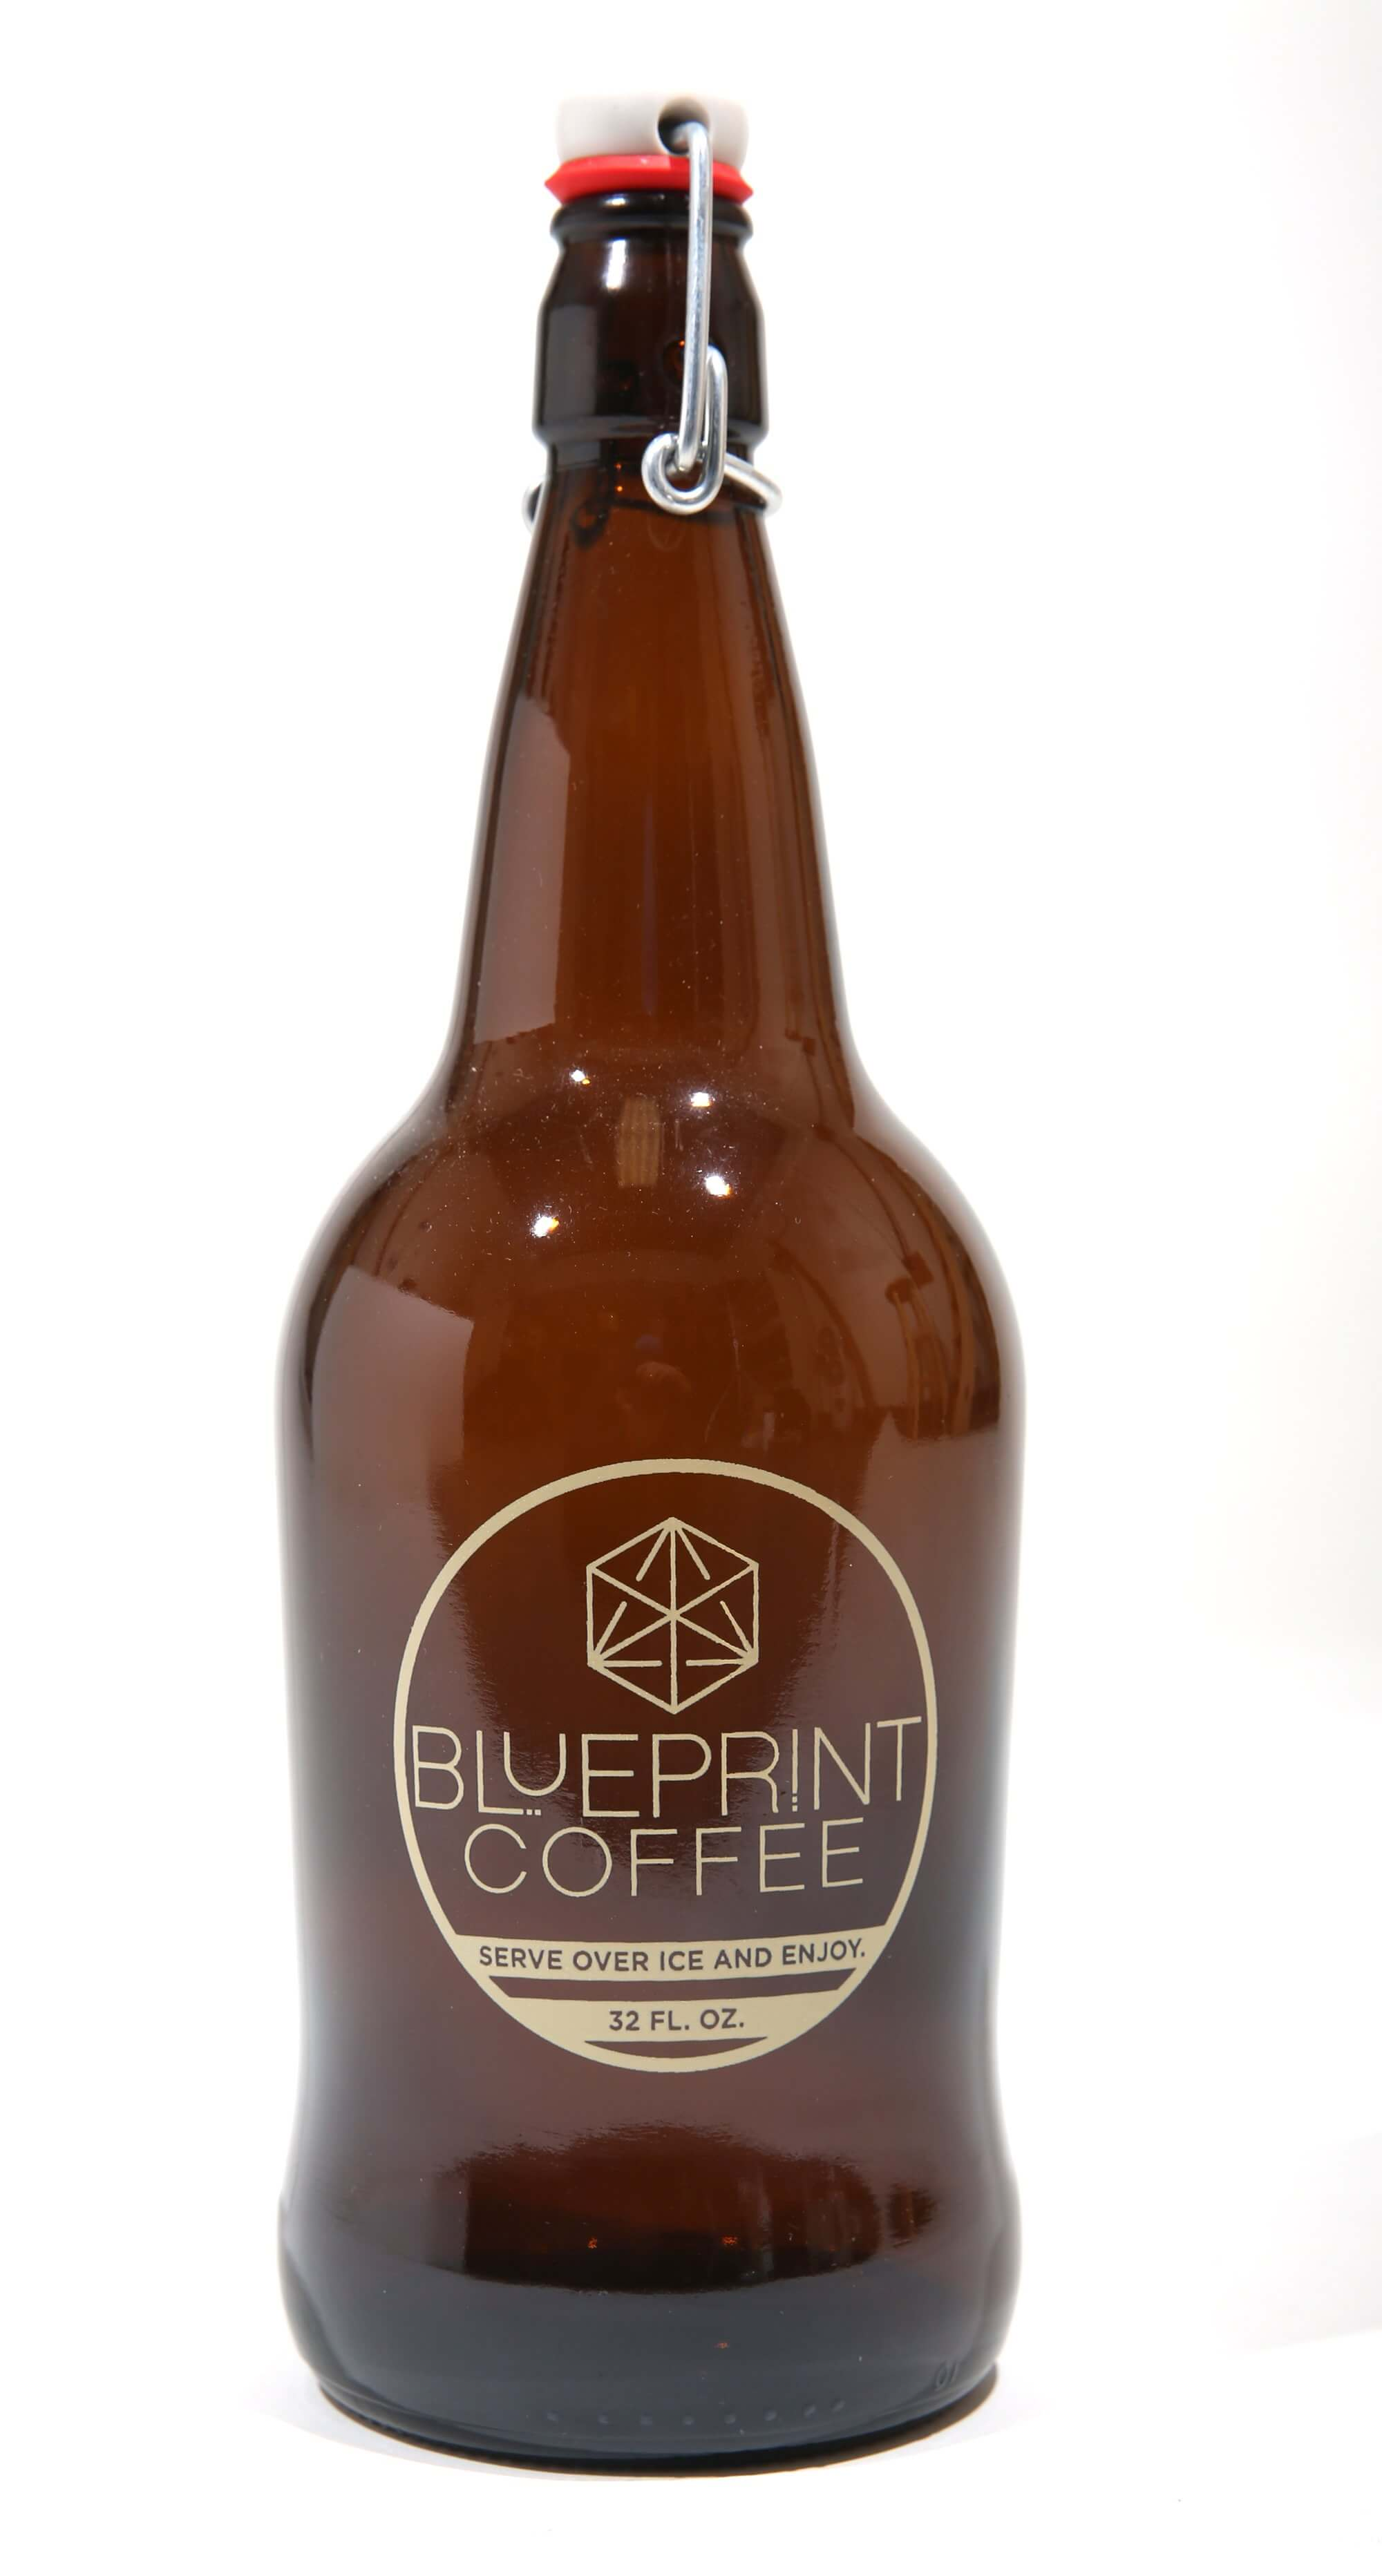 Blueprint Coffee growler